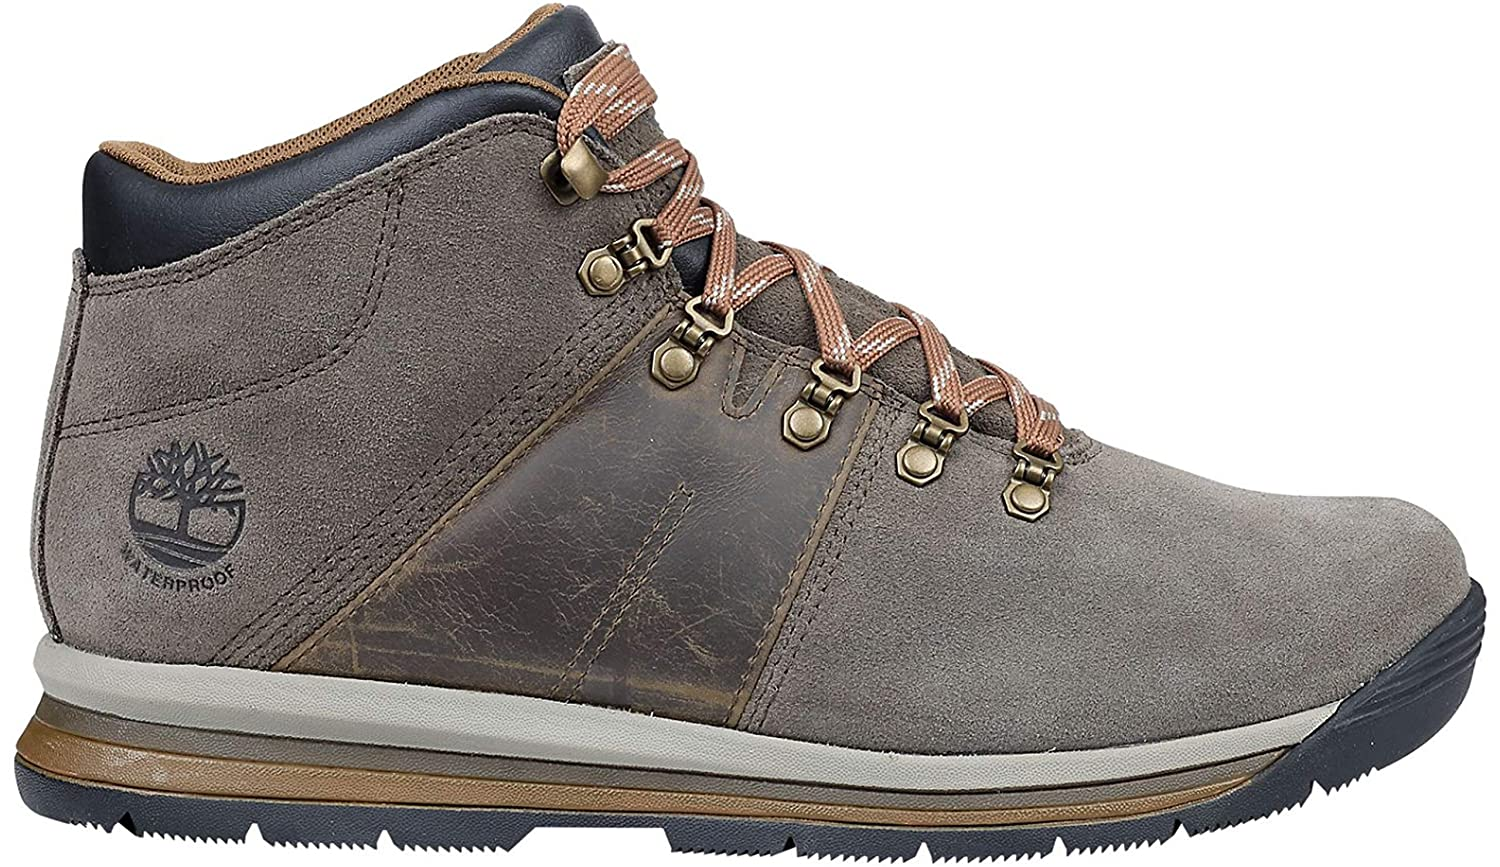 Details about Timberland Mens GT Rally Mid Leather Waterproof Boot